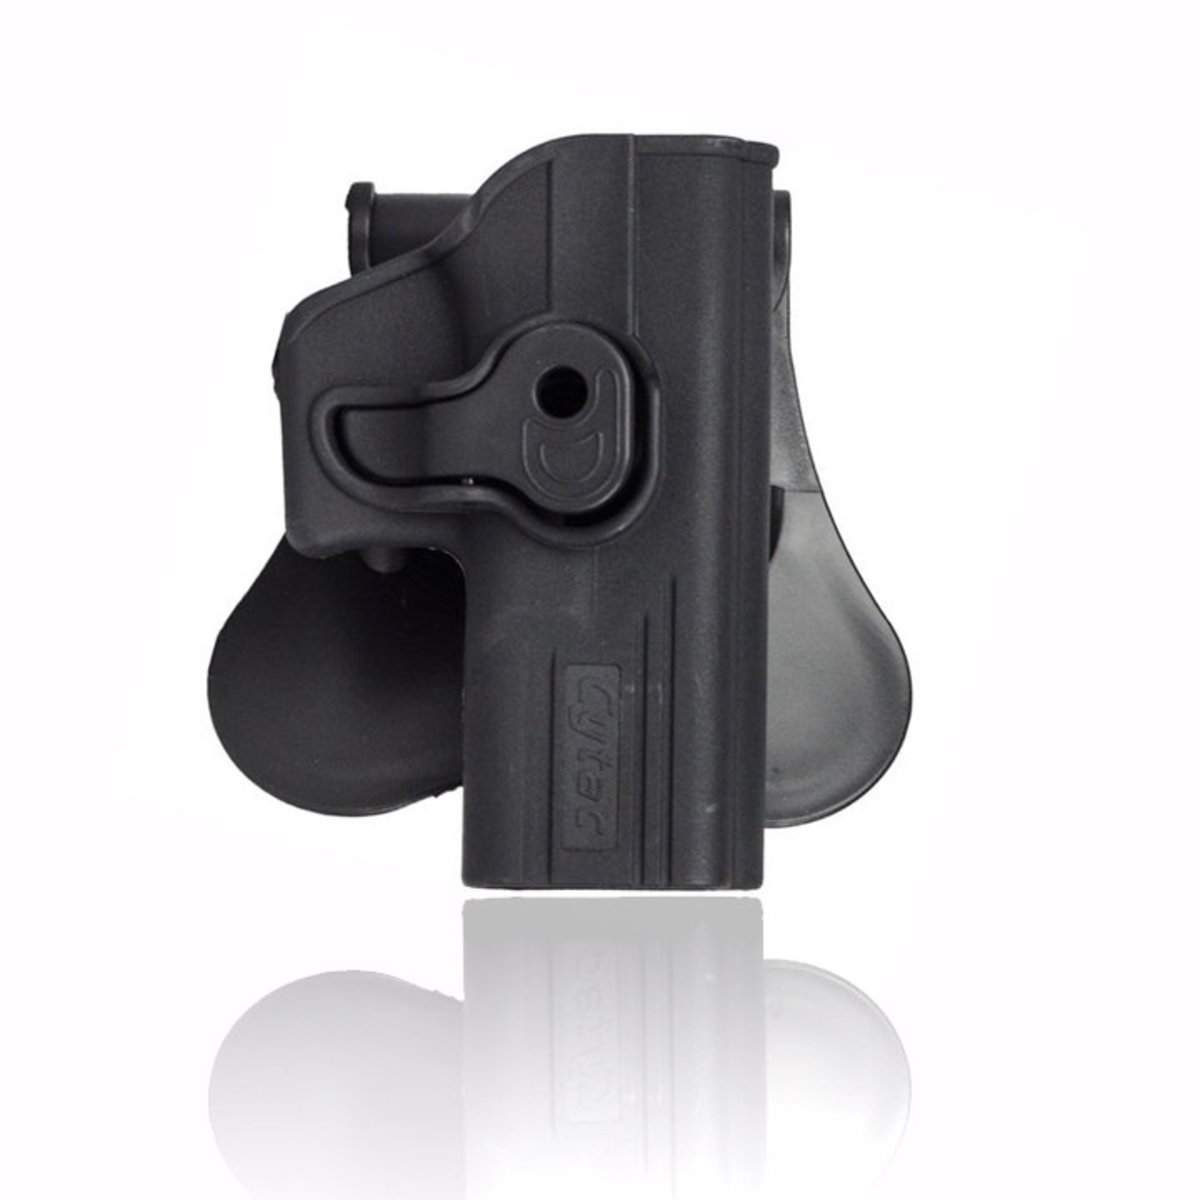 View larger image of Cytac OWB Holster - Fits GLOCK Airsoft Pistols